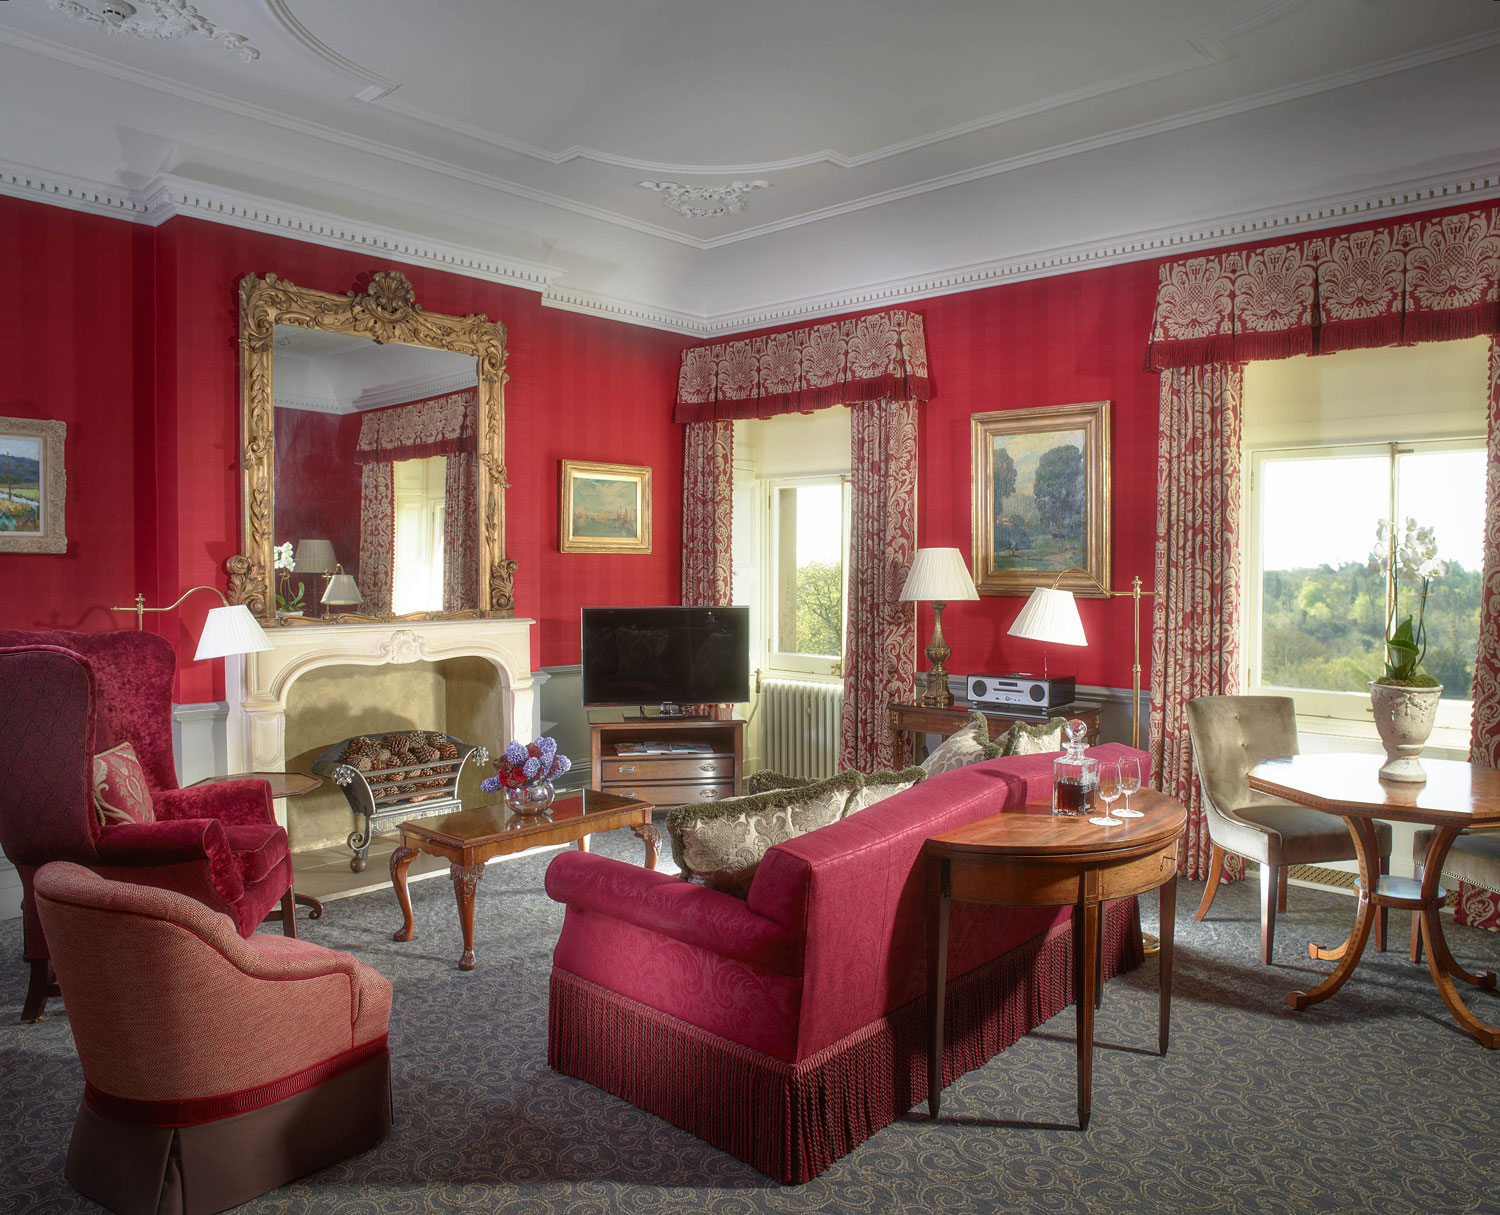 Prince of Wales Suite at Cliveden House honeymoon hotel ideas